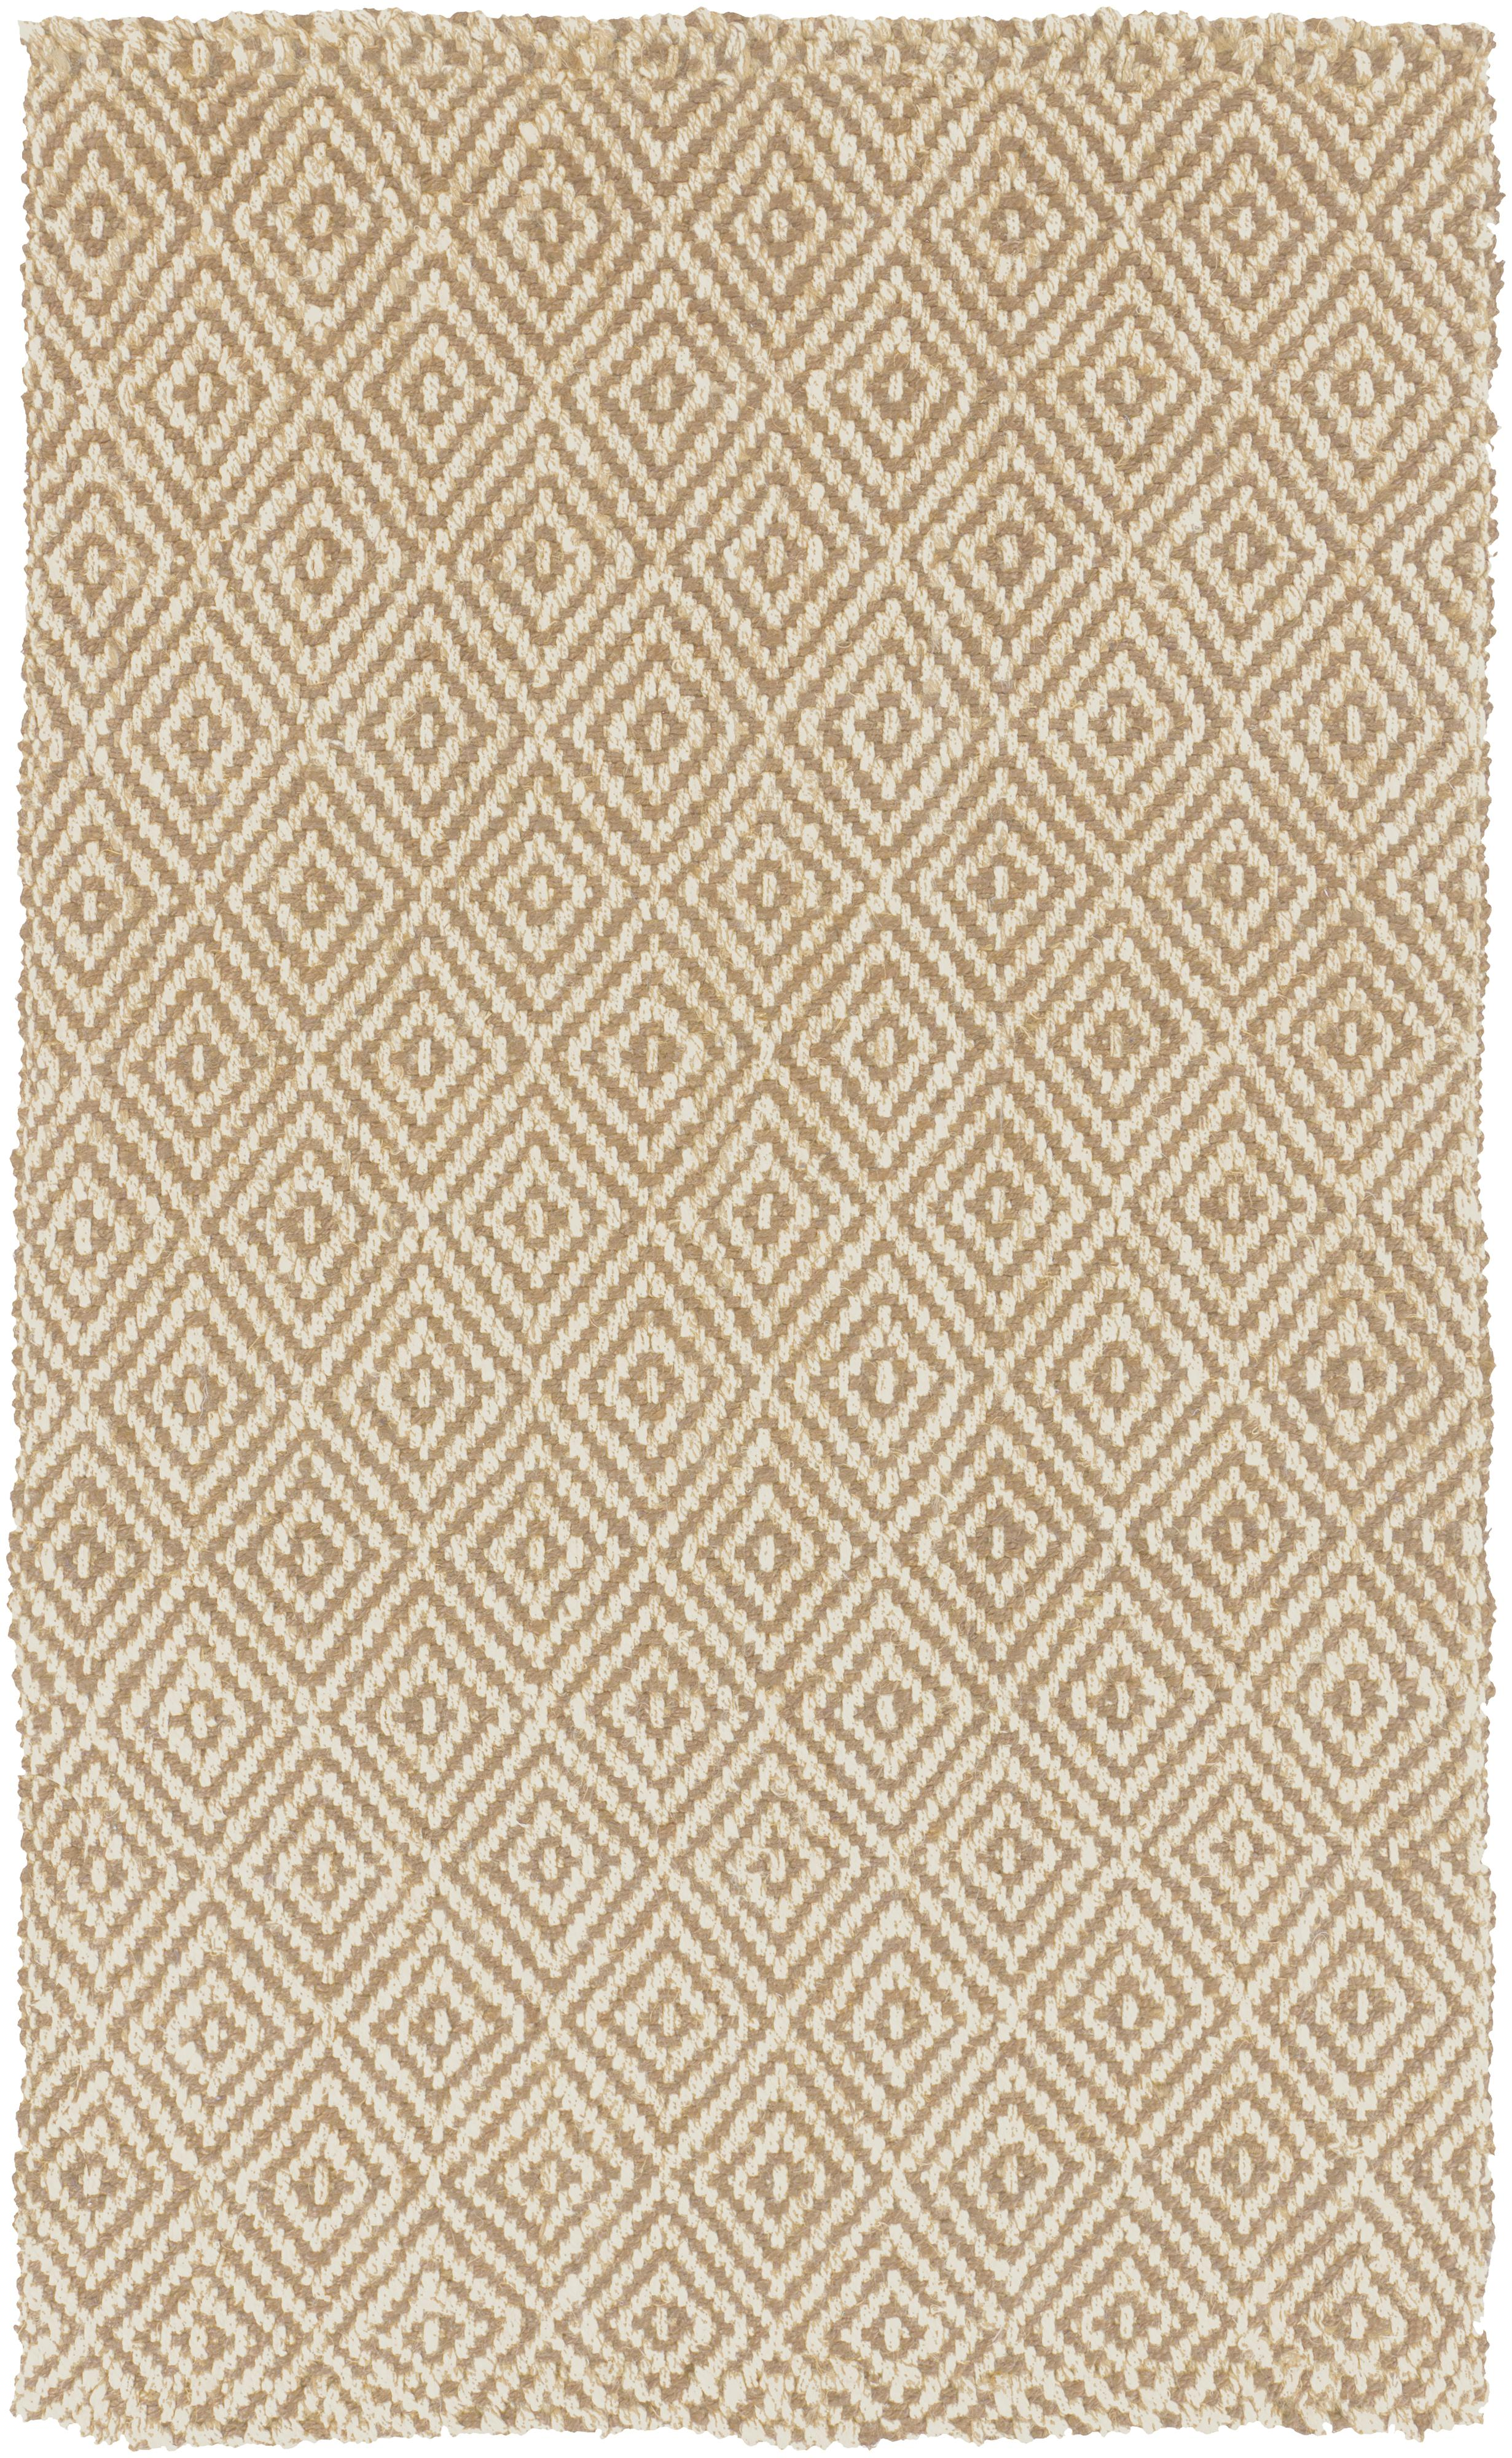 Reeds 8' x 11' by Ruby-Gordon Accents at Ruby Gordon Home